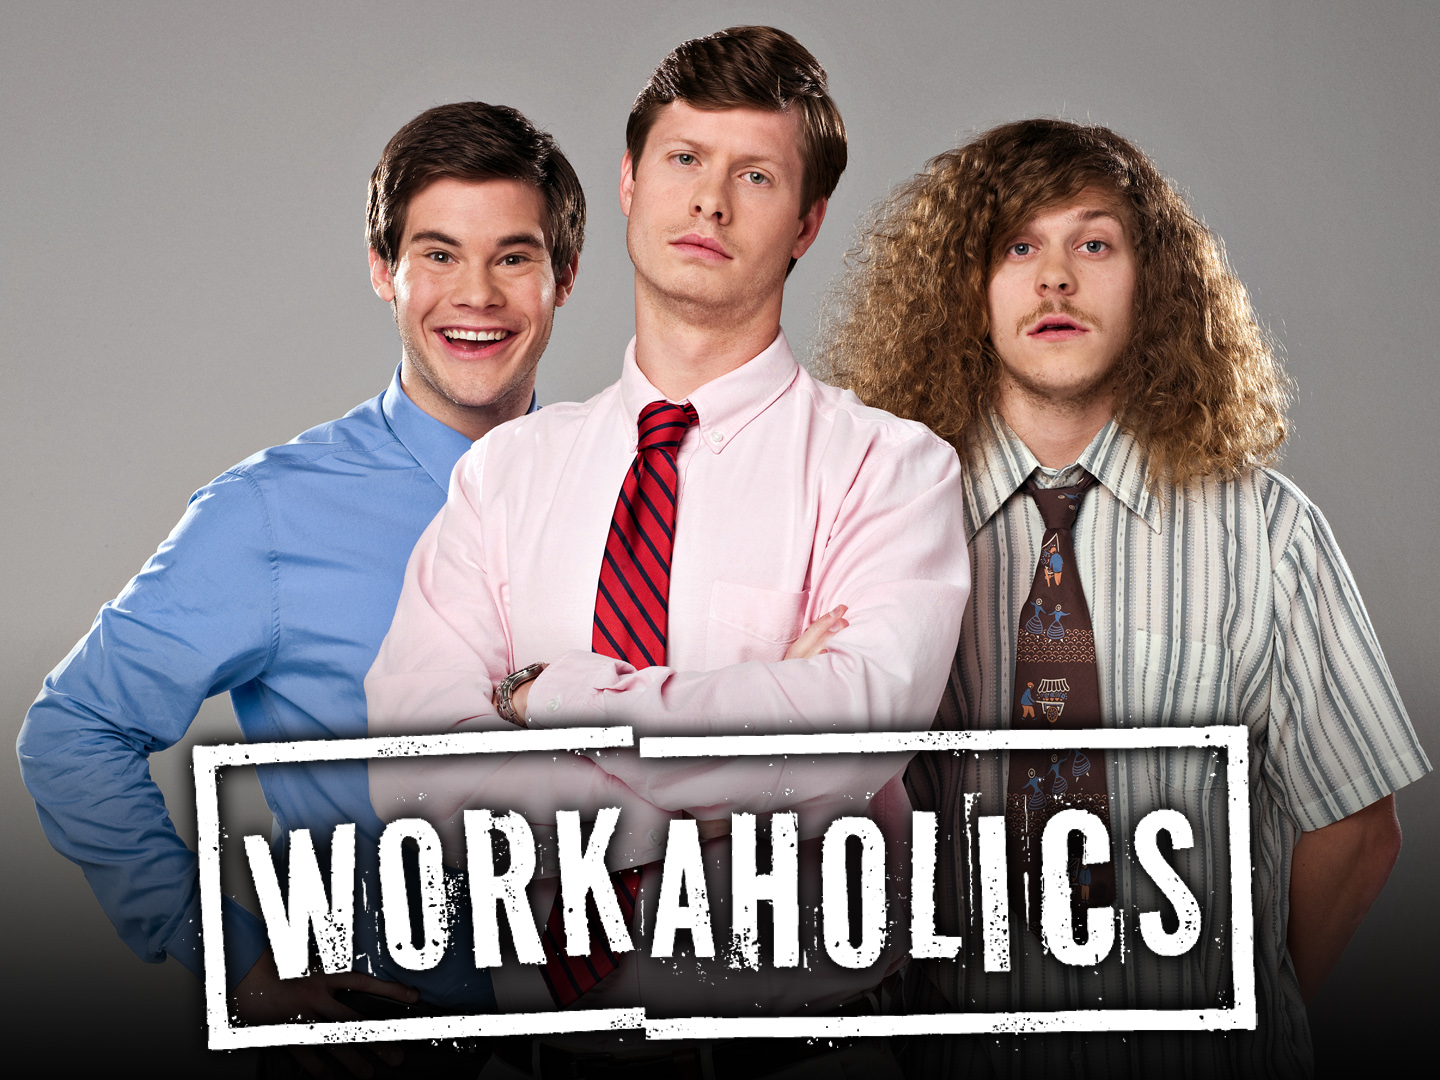 workaholics working time and work Just because your boss works all the time doesn't mean you have to  whether  that means working ridiculous hours, inhaling lunch at your desk (or skipping it.